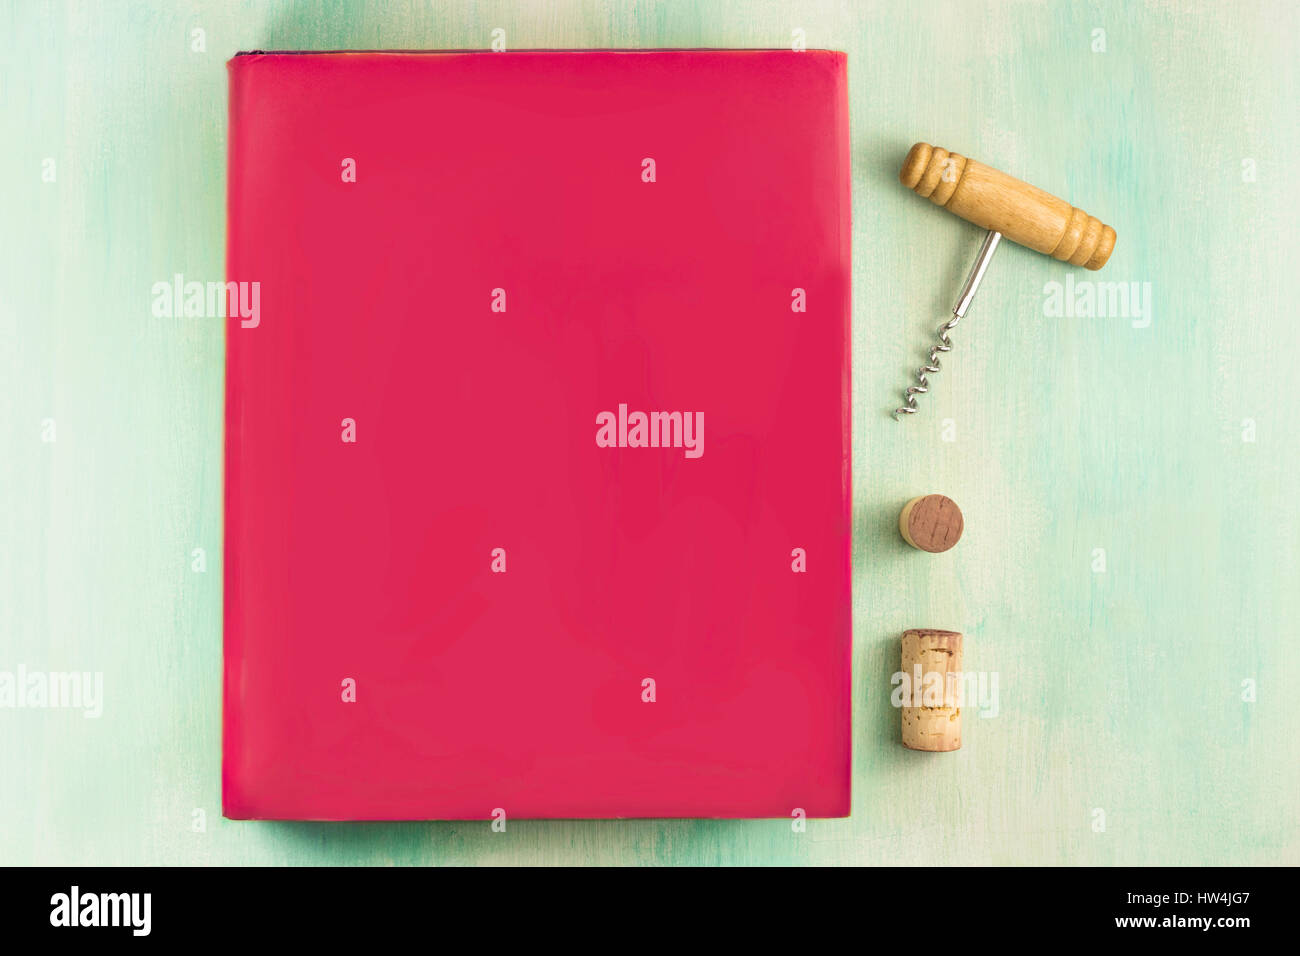 Vibrant pink book, corkscrew, and wine corks - Stock Image